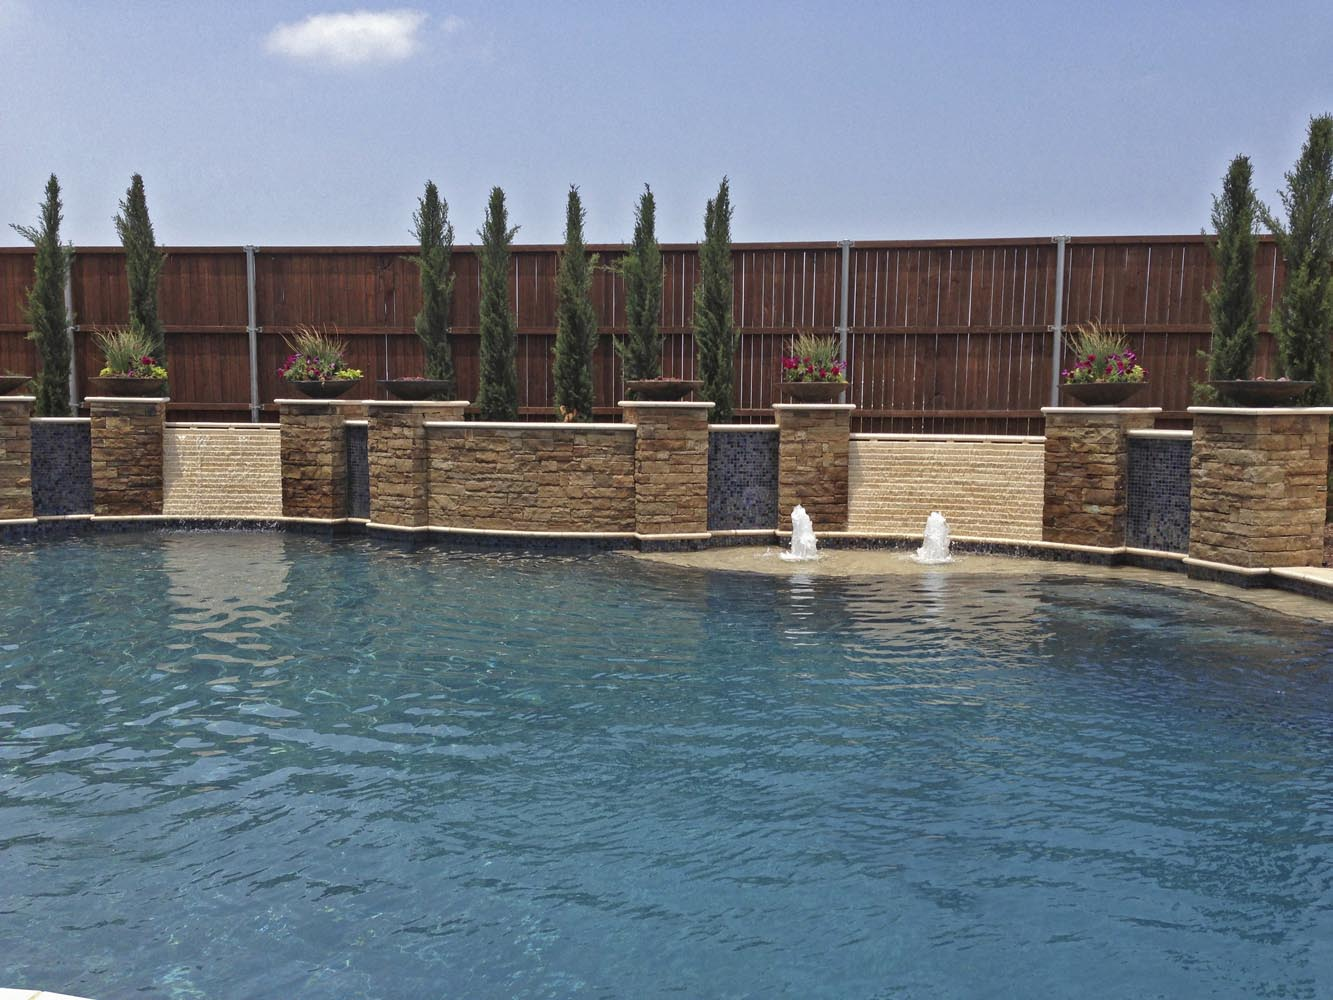 Pool Design Dallas pool feature highlights Free Form Pool Concrete Fire Bowls Iridescent Glass Tile Travertine And Stone Walls